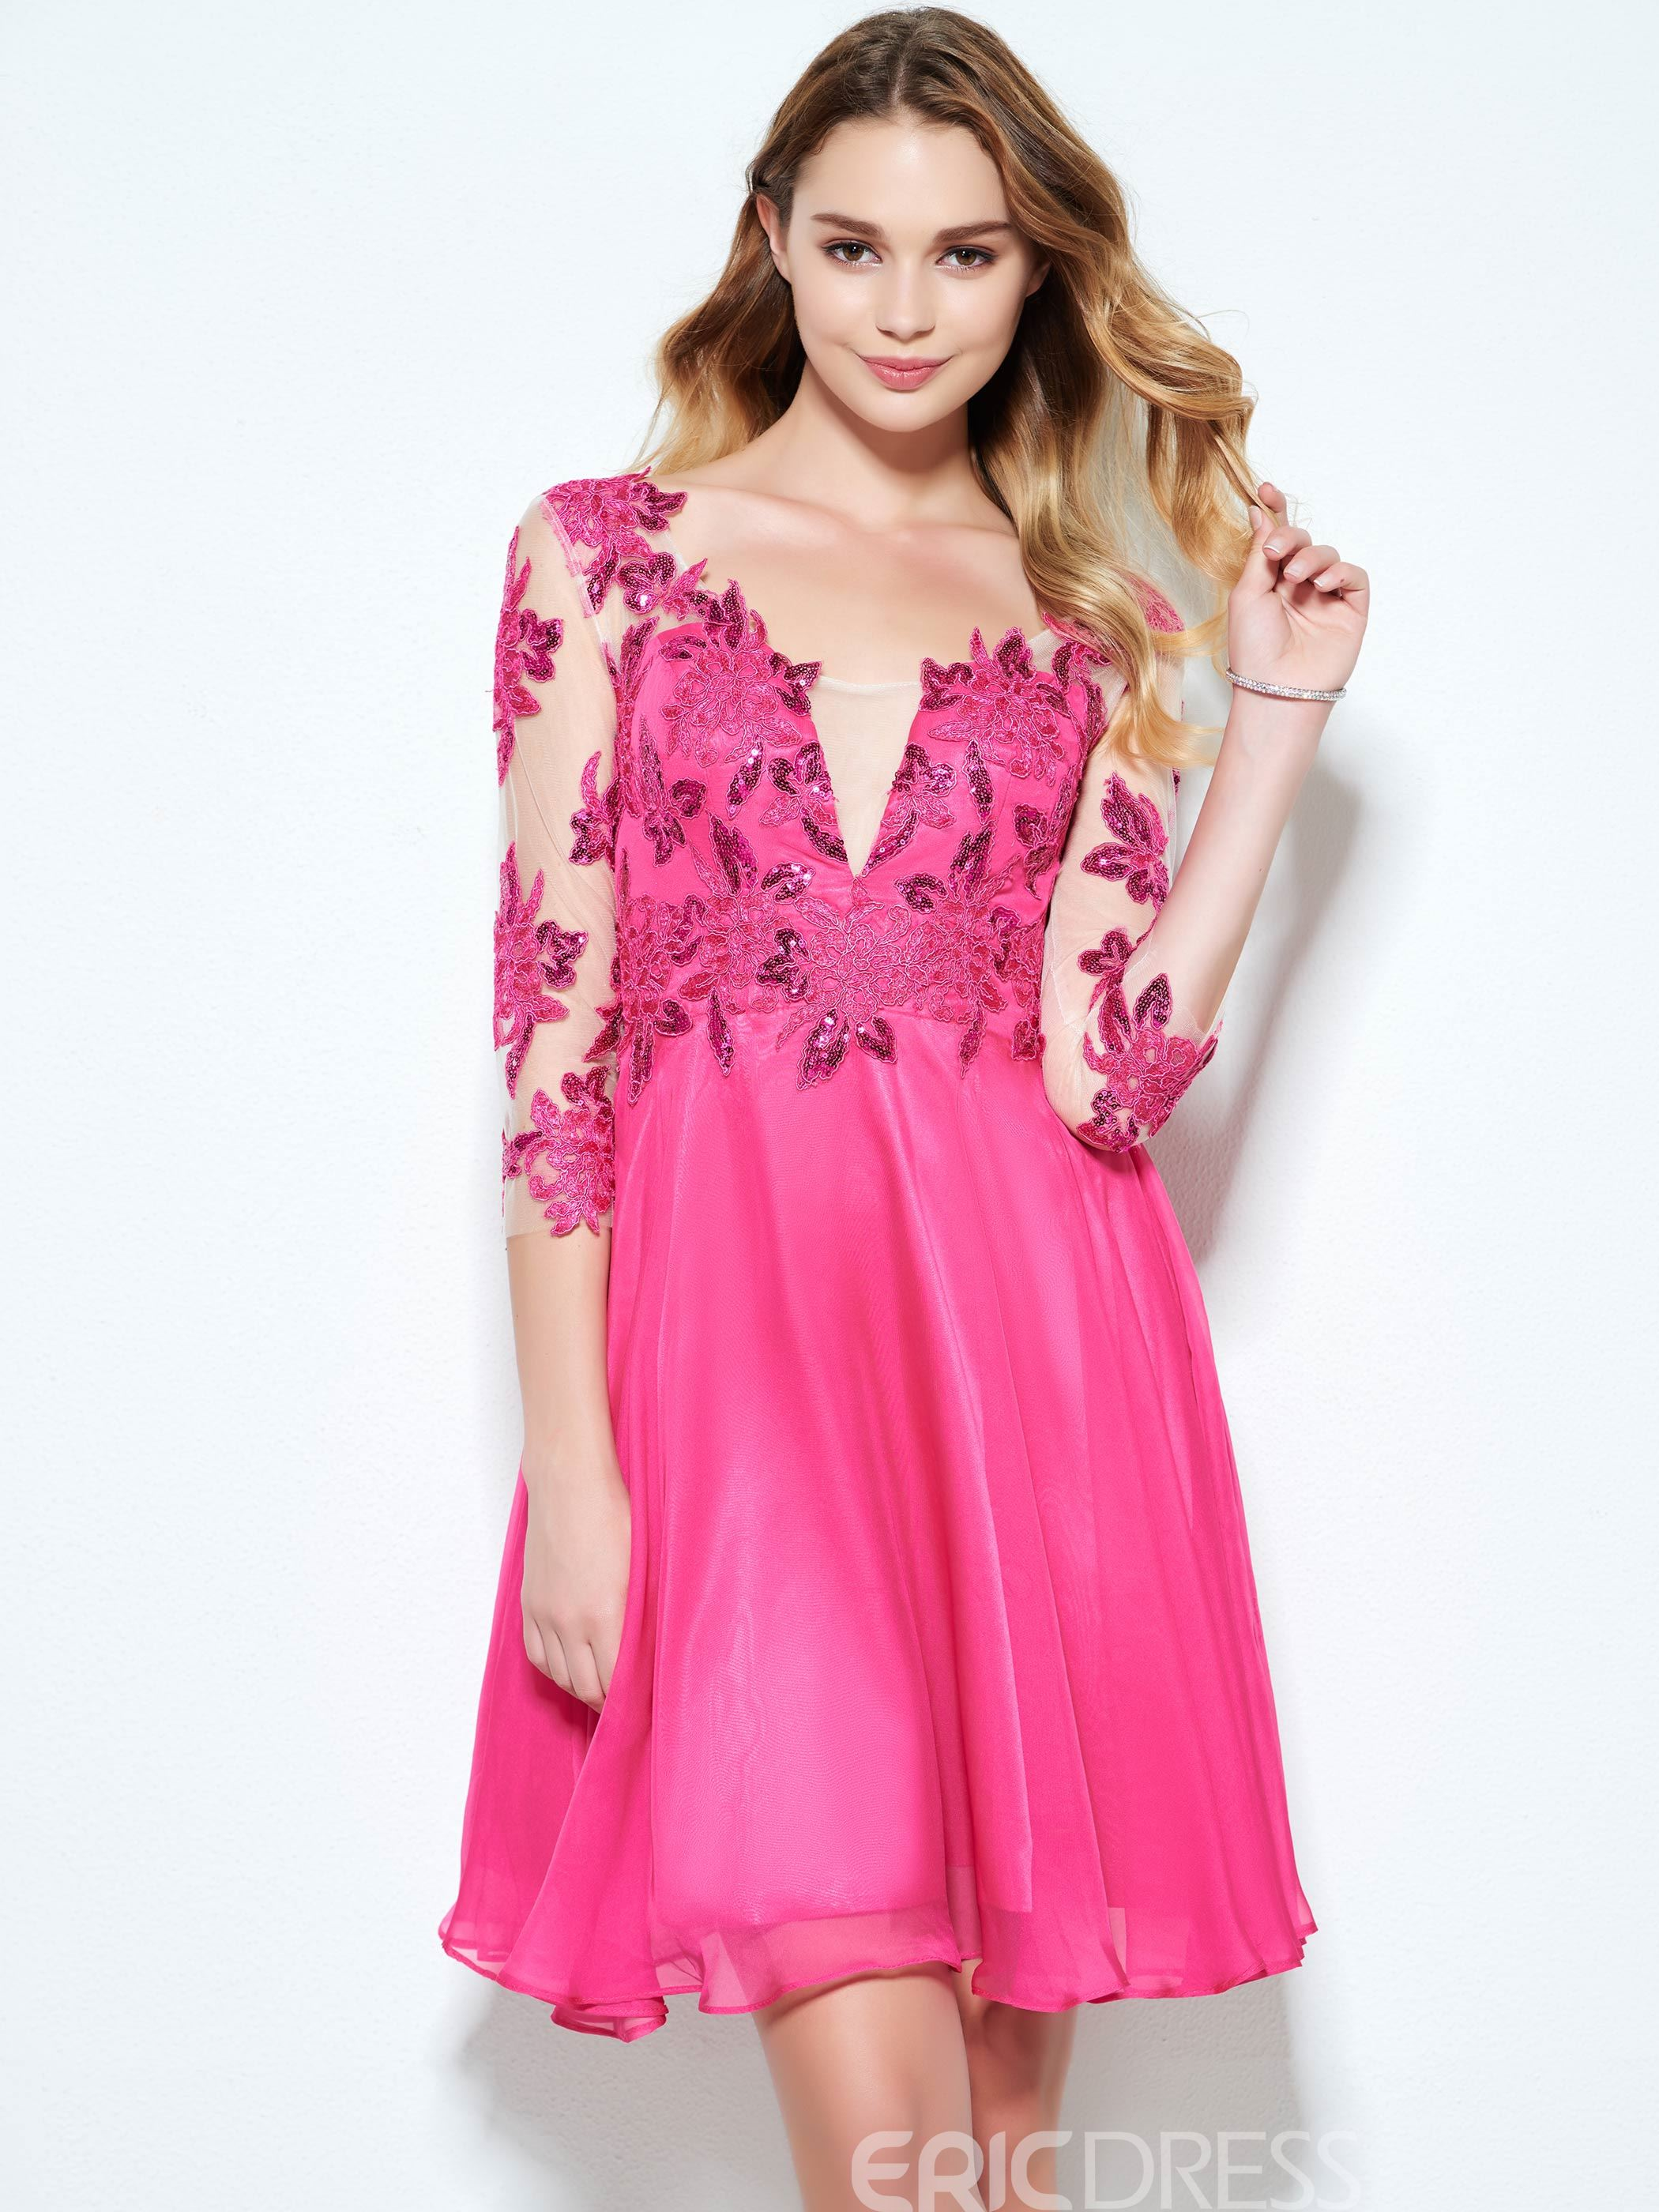 Ericdress A-Line V-Neck 3/4 Length Sleeves Appliques Button Sequins Shrot Homecoming Dress